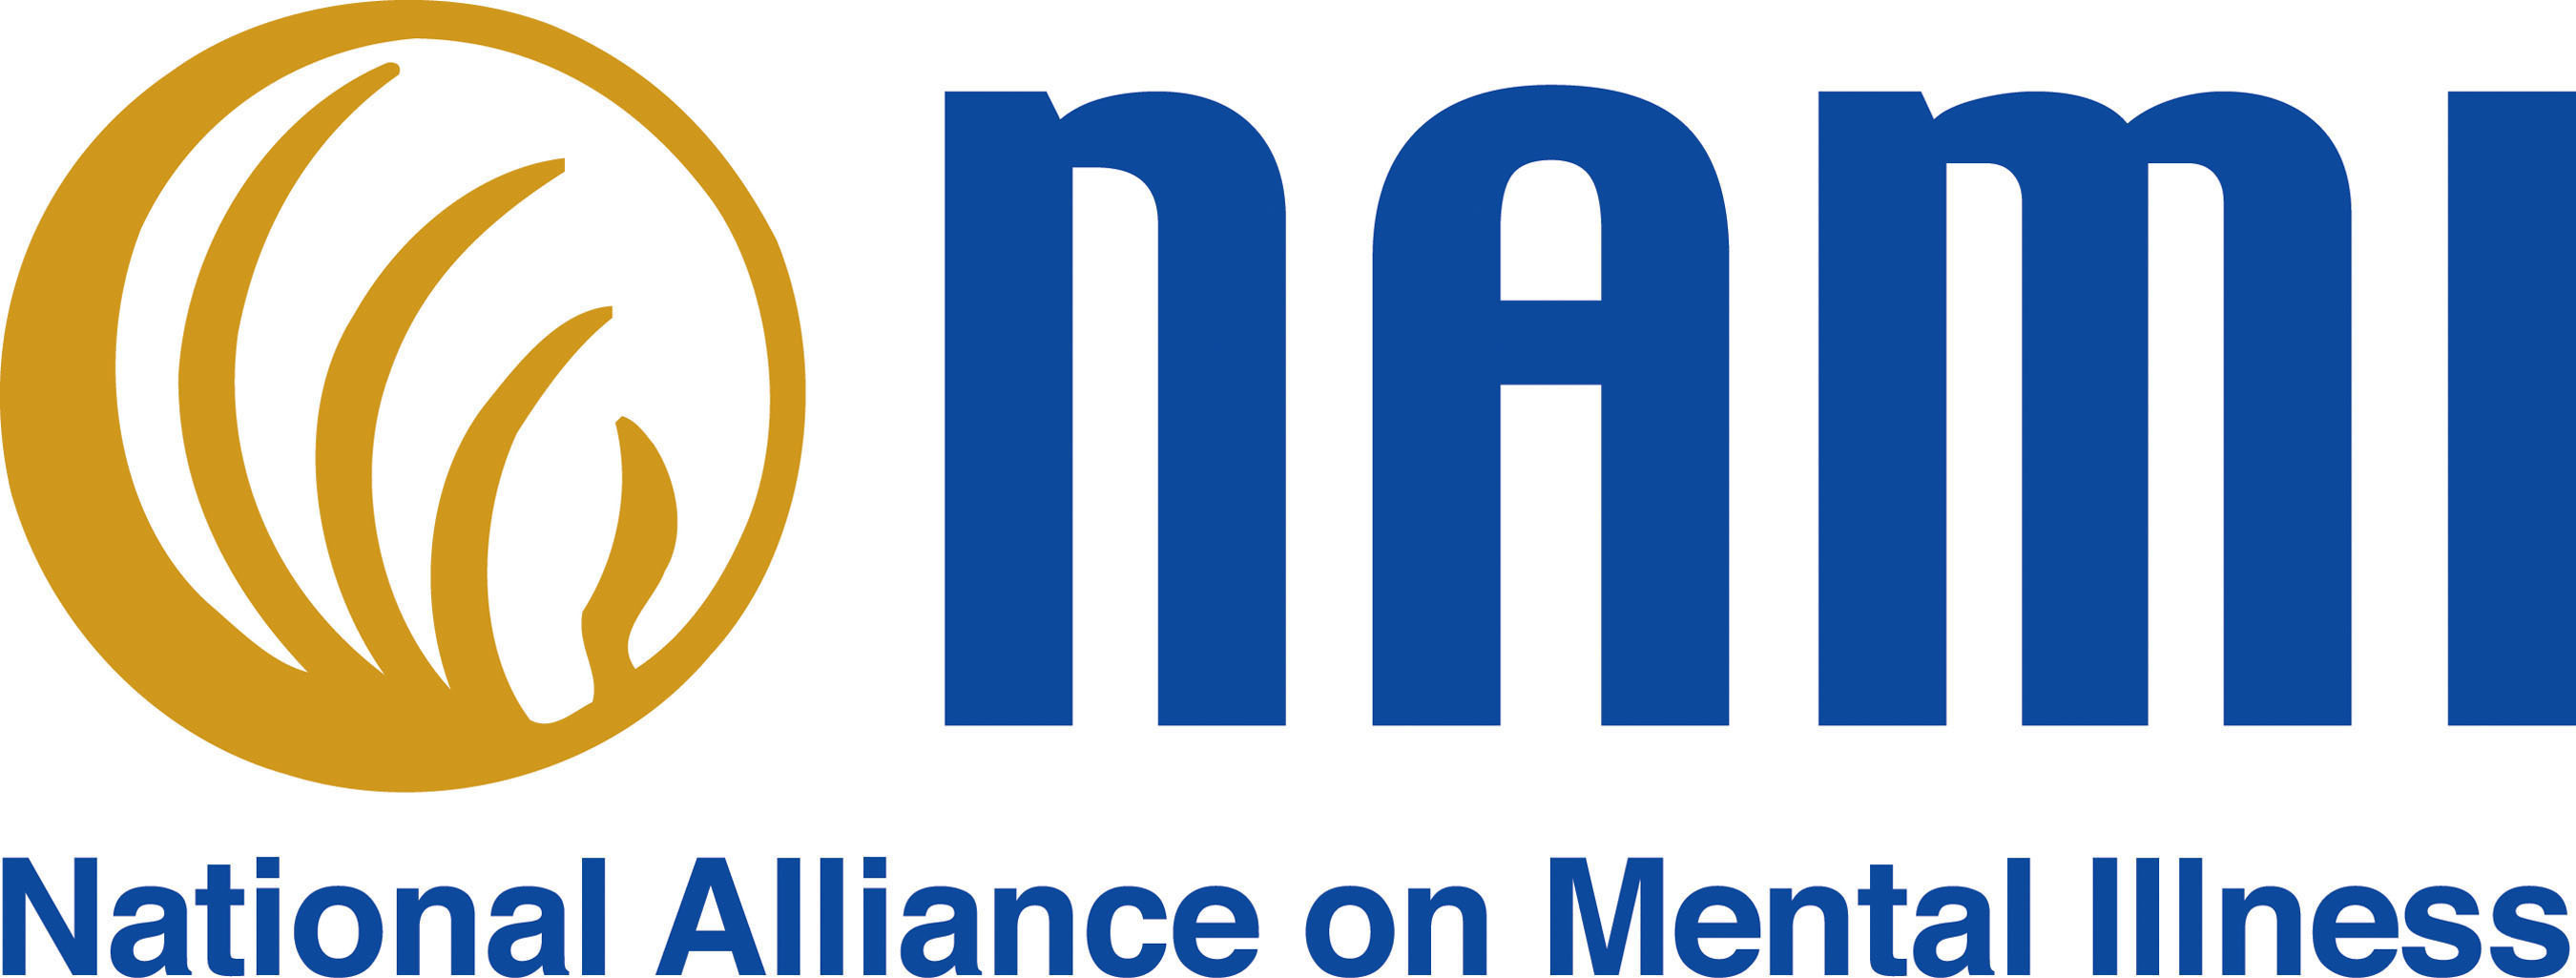 Nami Survey Report Too Many Gaps In Mental Health Insurance Coverage